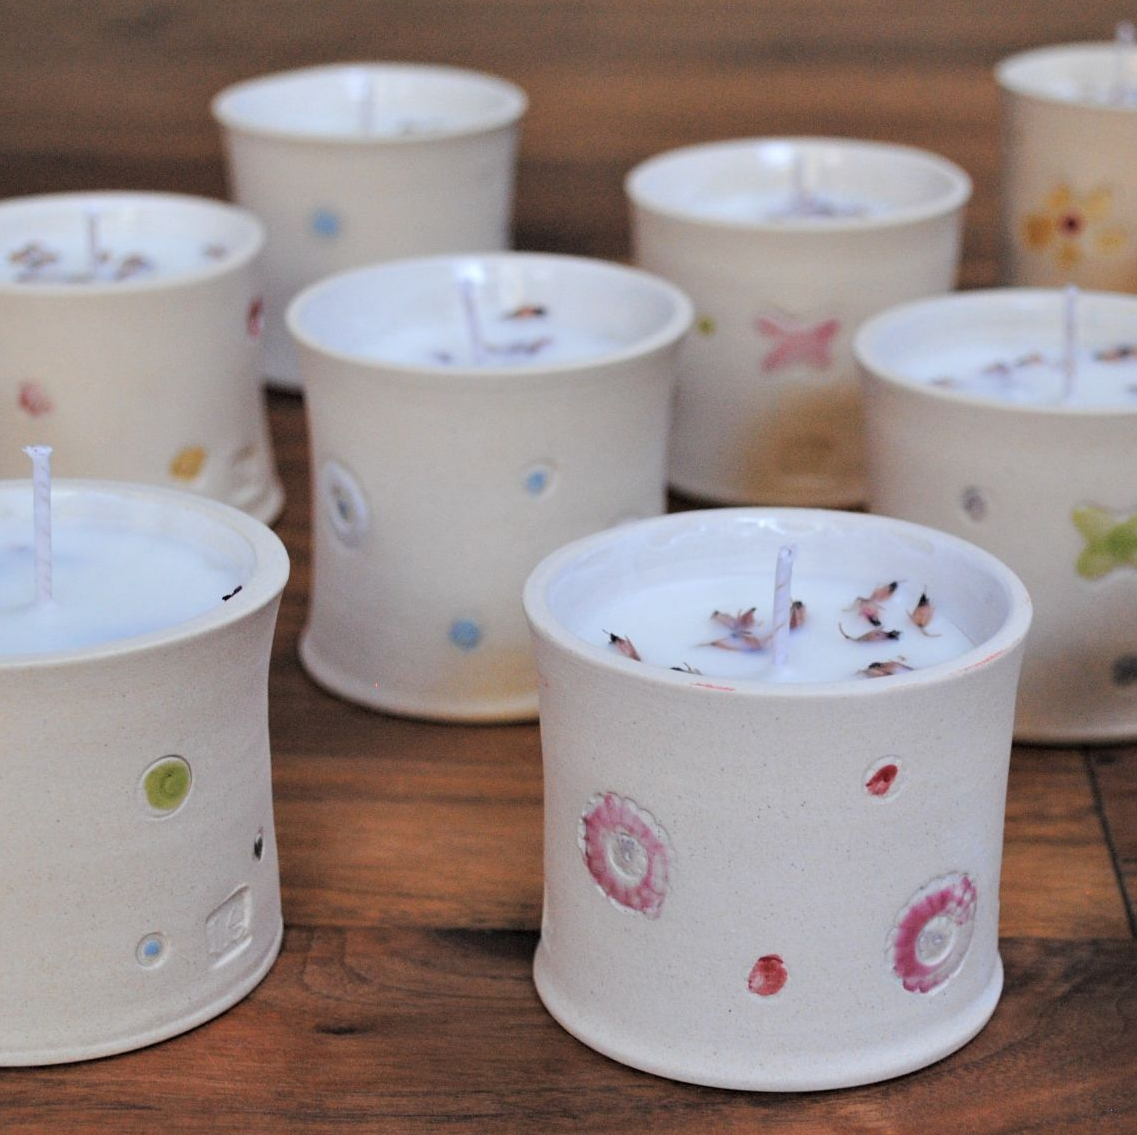 Fragrance eco-friendly Candle in a reusable ceramic pot.